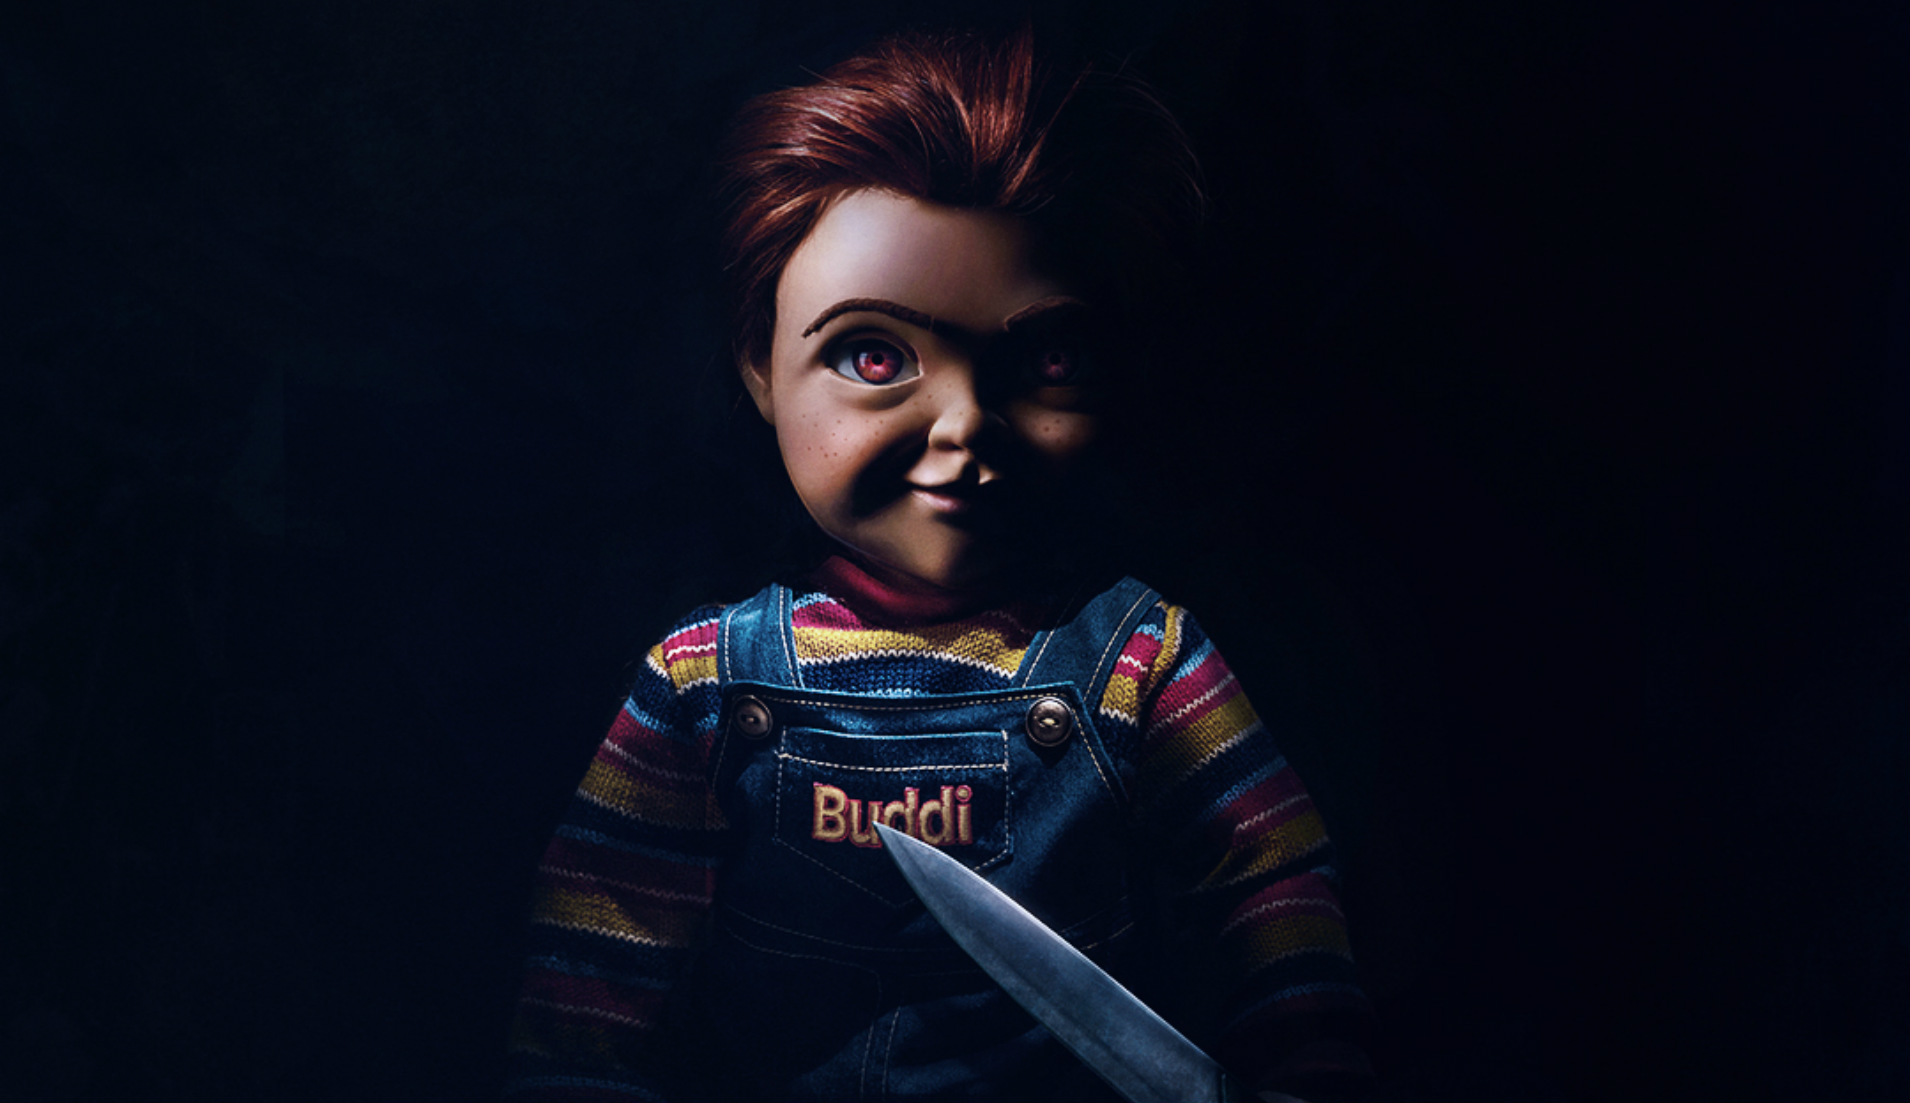 Child's Play Trailer: Mark Hamill's Chucky Voice Will Haunt Your Dreams